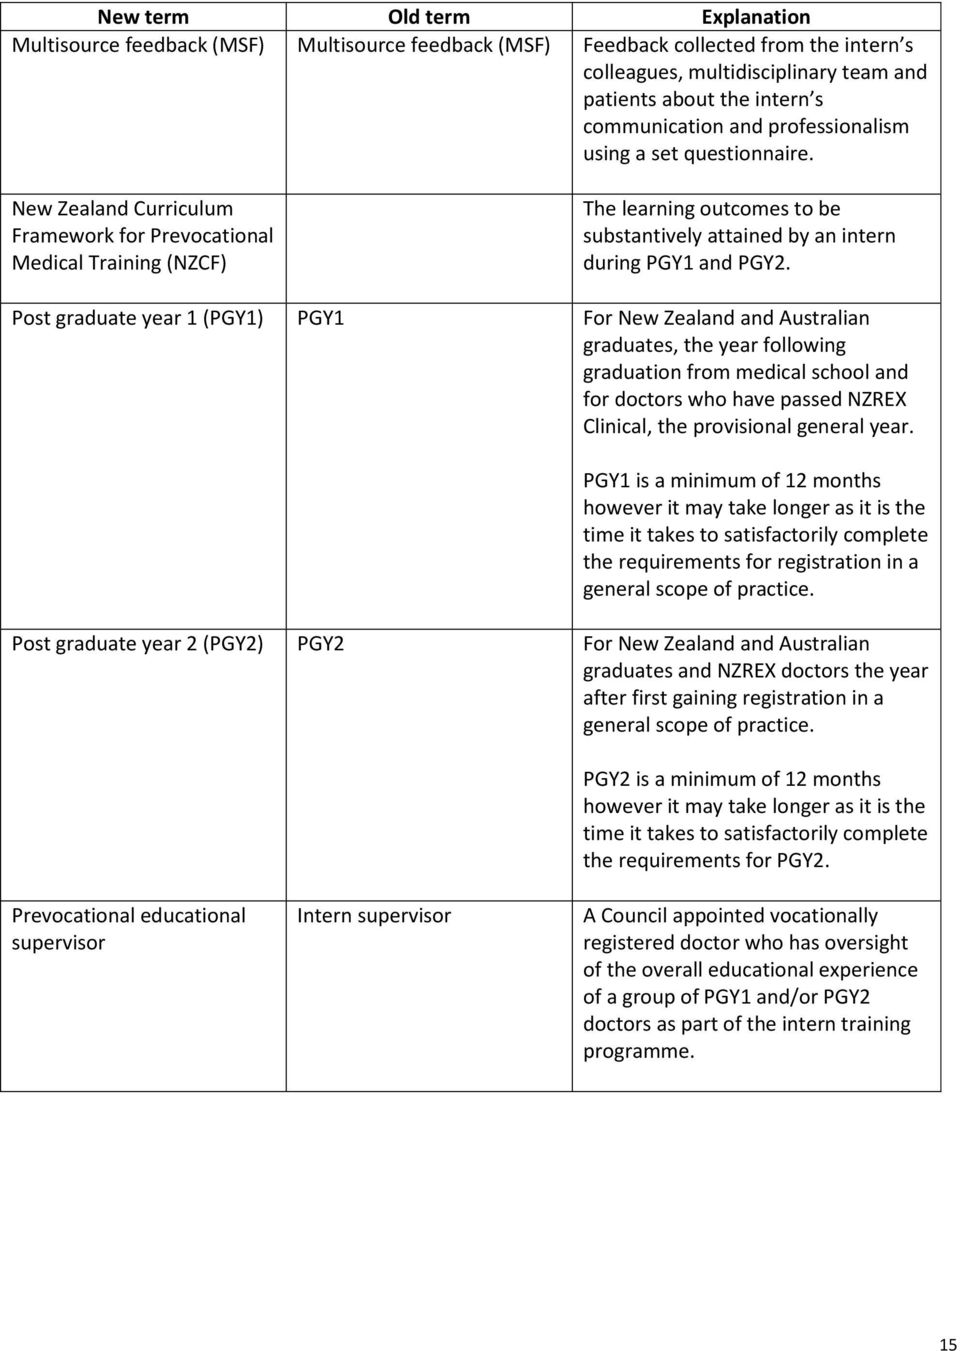 New Zealand Curriculum Framework for Prevocational Medical Training (NZCF) The learning outcomes to be substantively attained by an intern during PGY1 and PGY2.